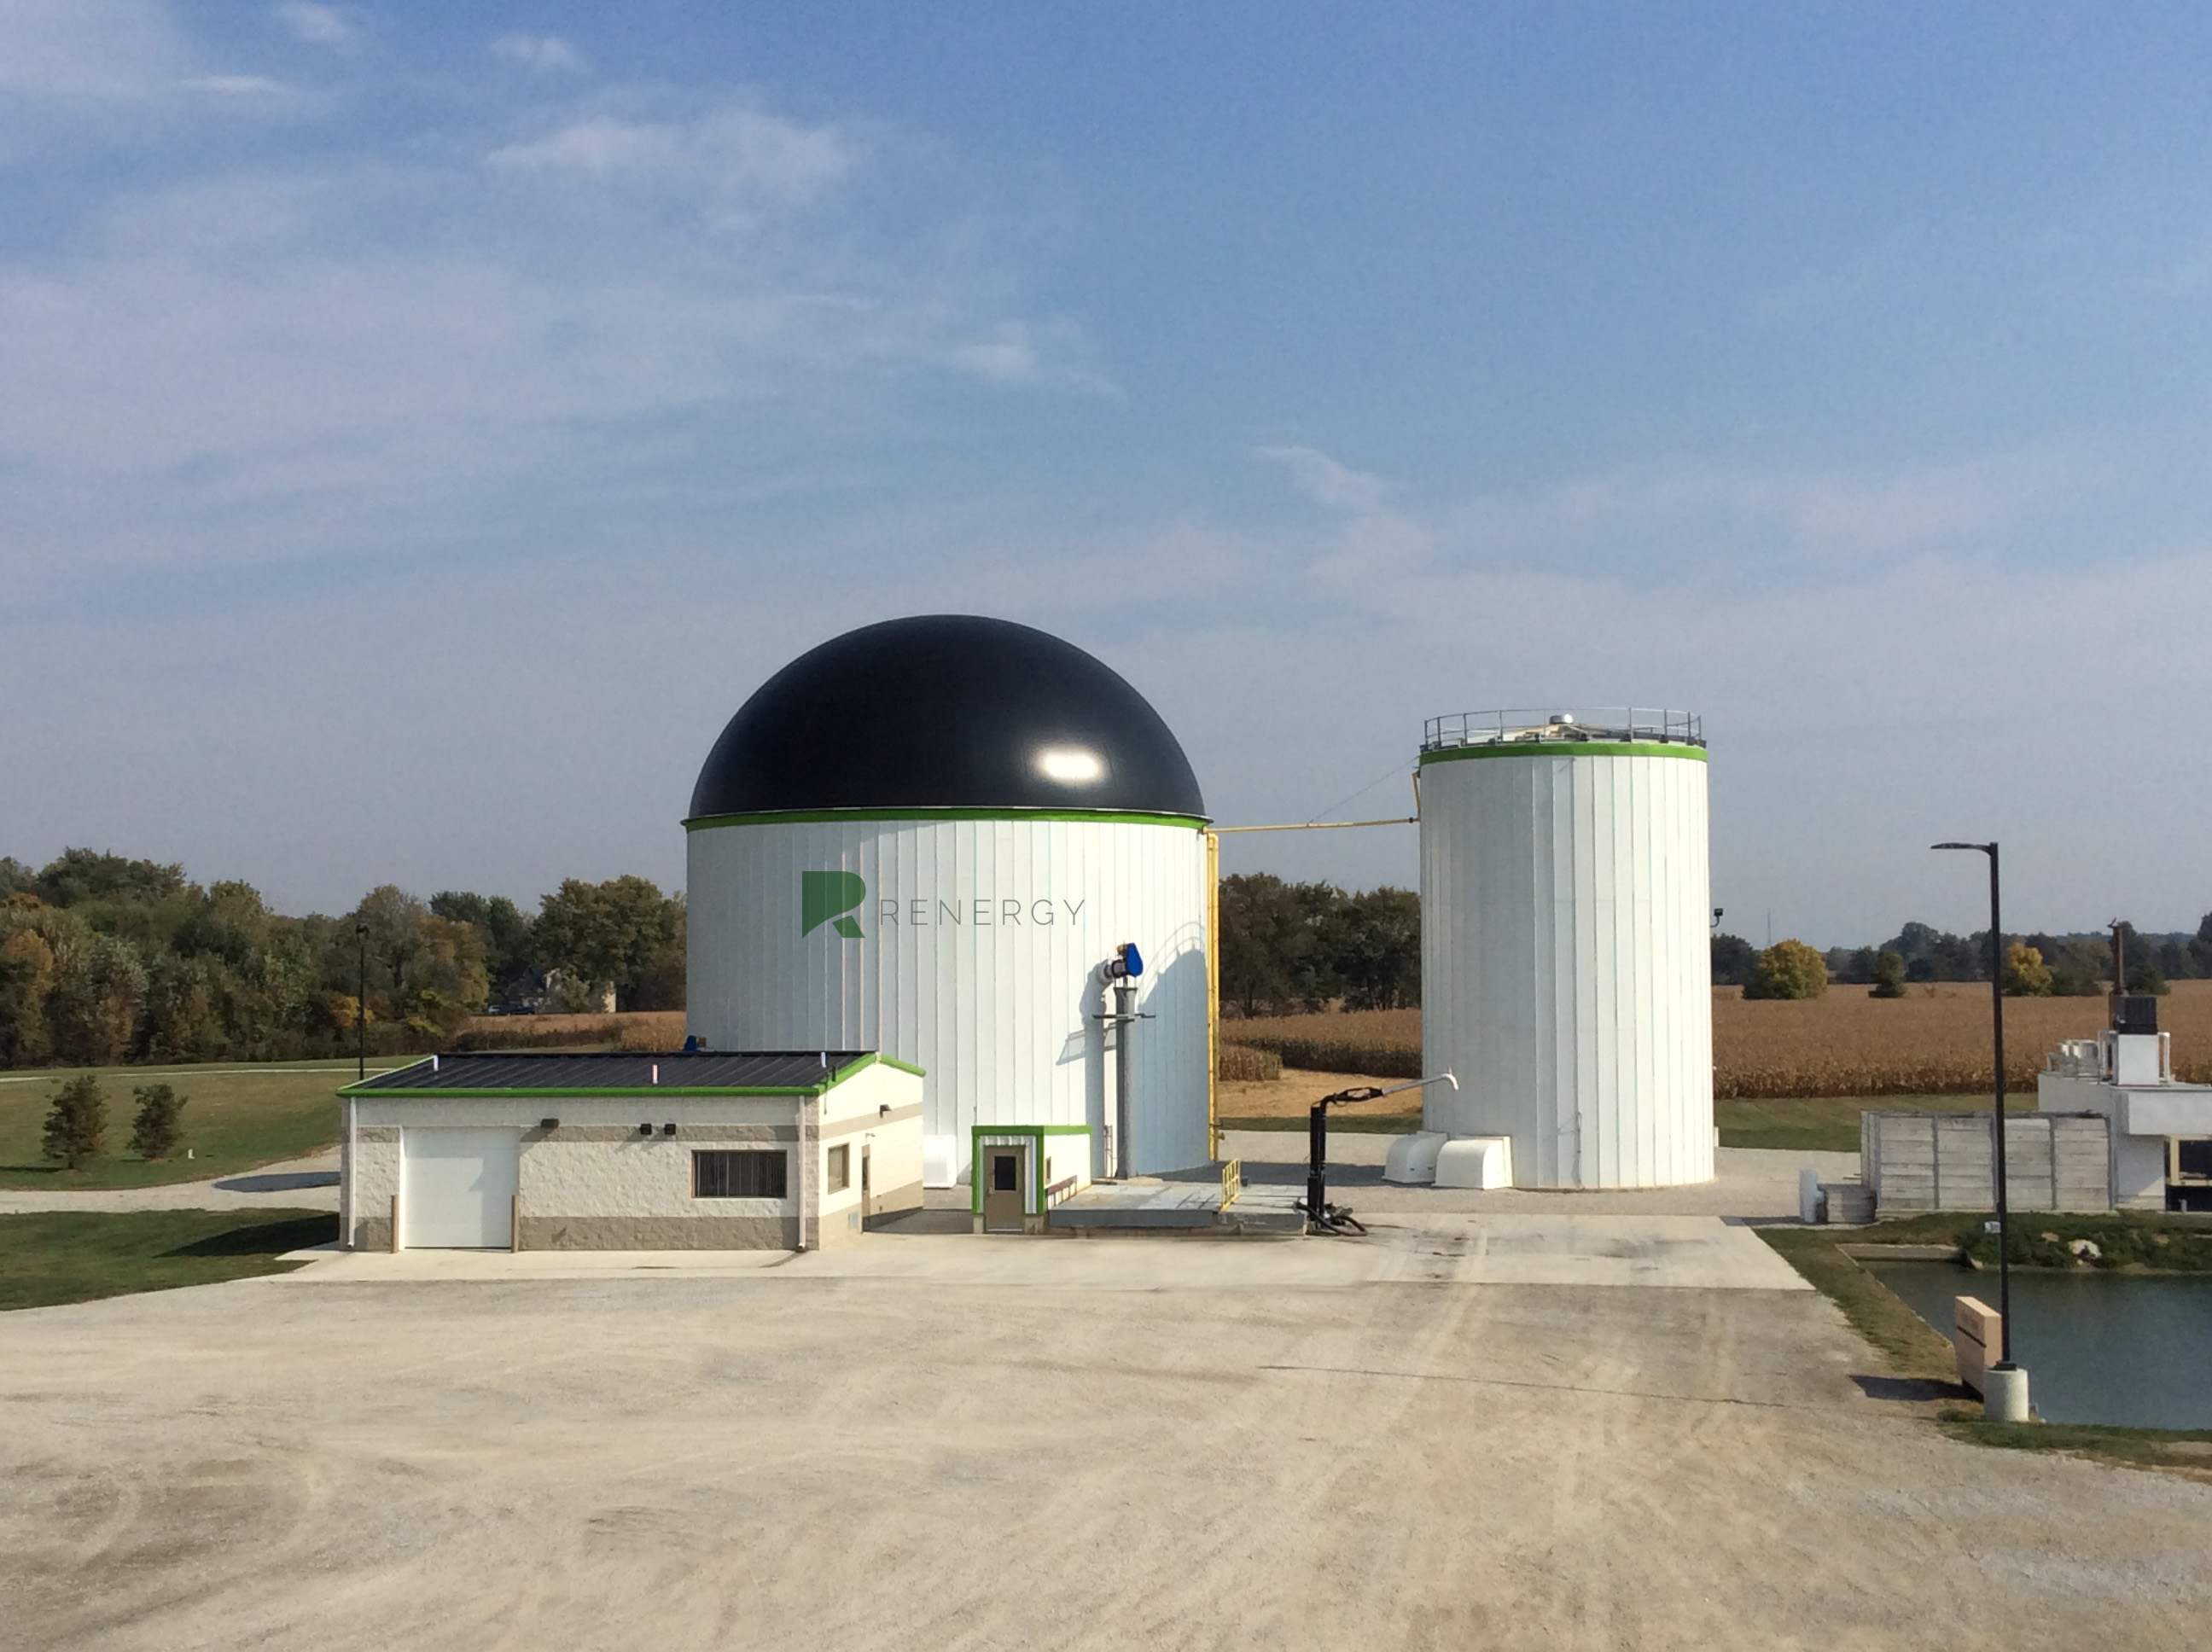 anaerobic-digestion-facility-emerald-renergy